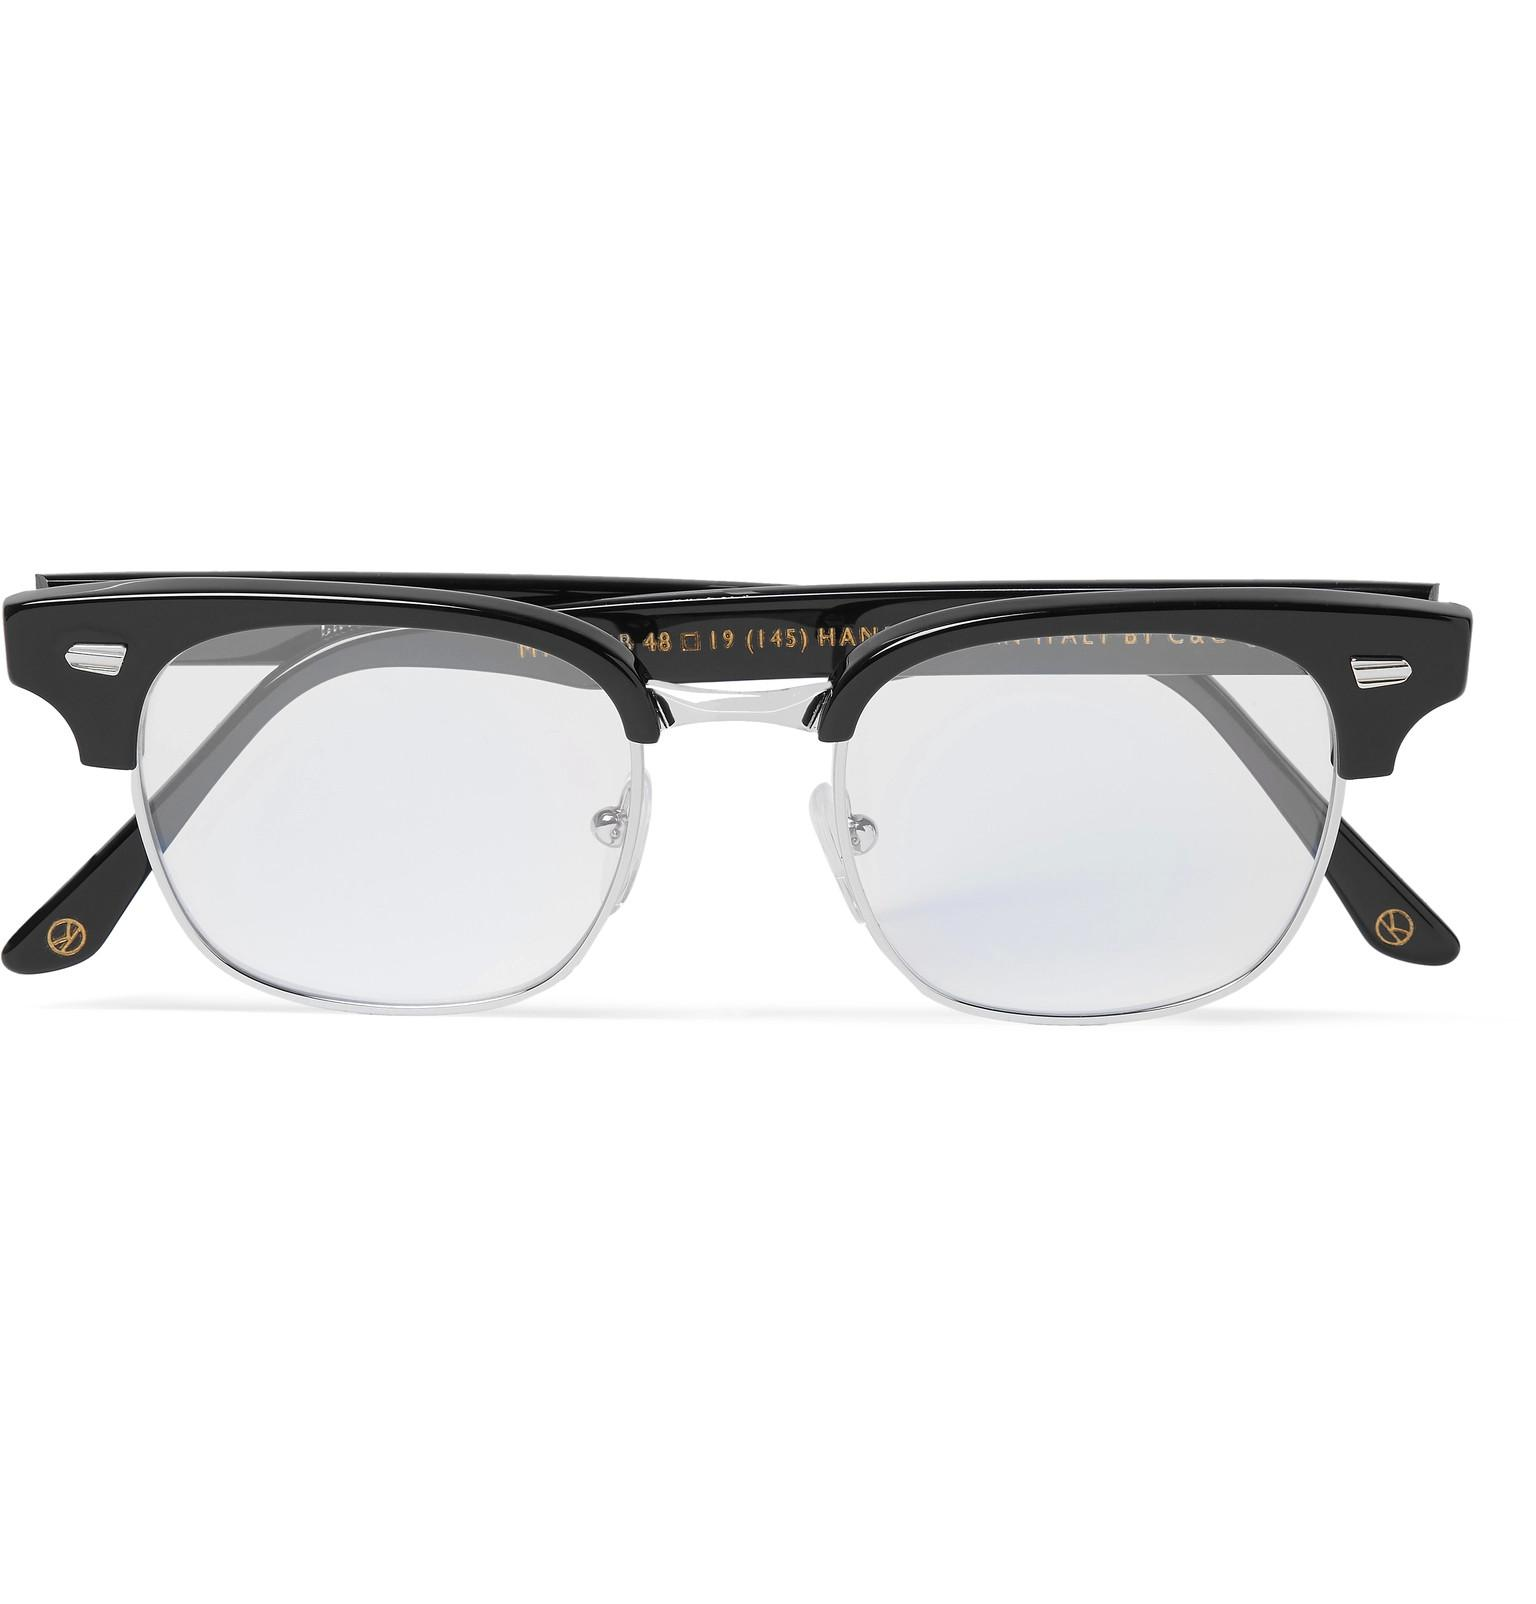 + Cutler And Gross Square-frame Tortoiseshell Acetate Sunglasses Kingsman nxpad